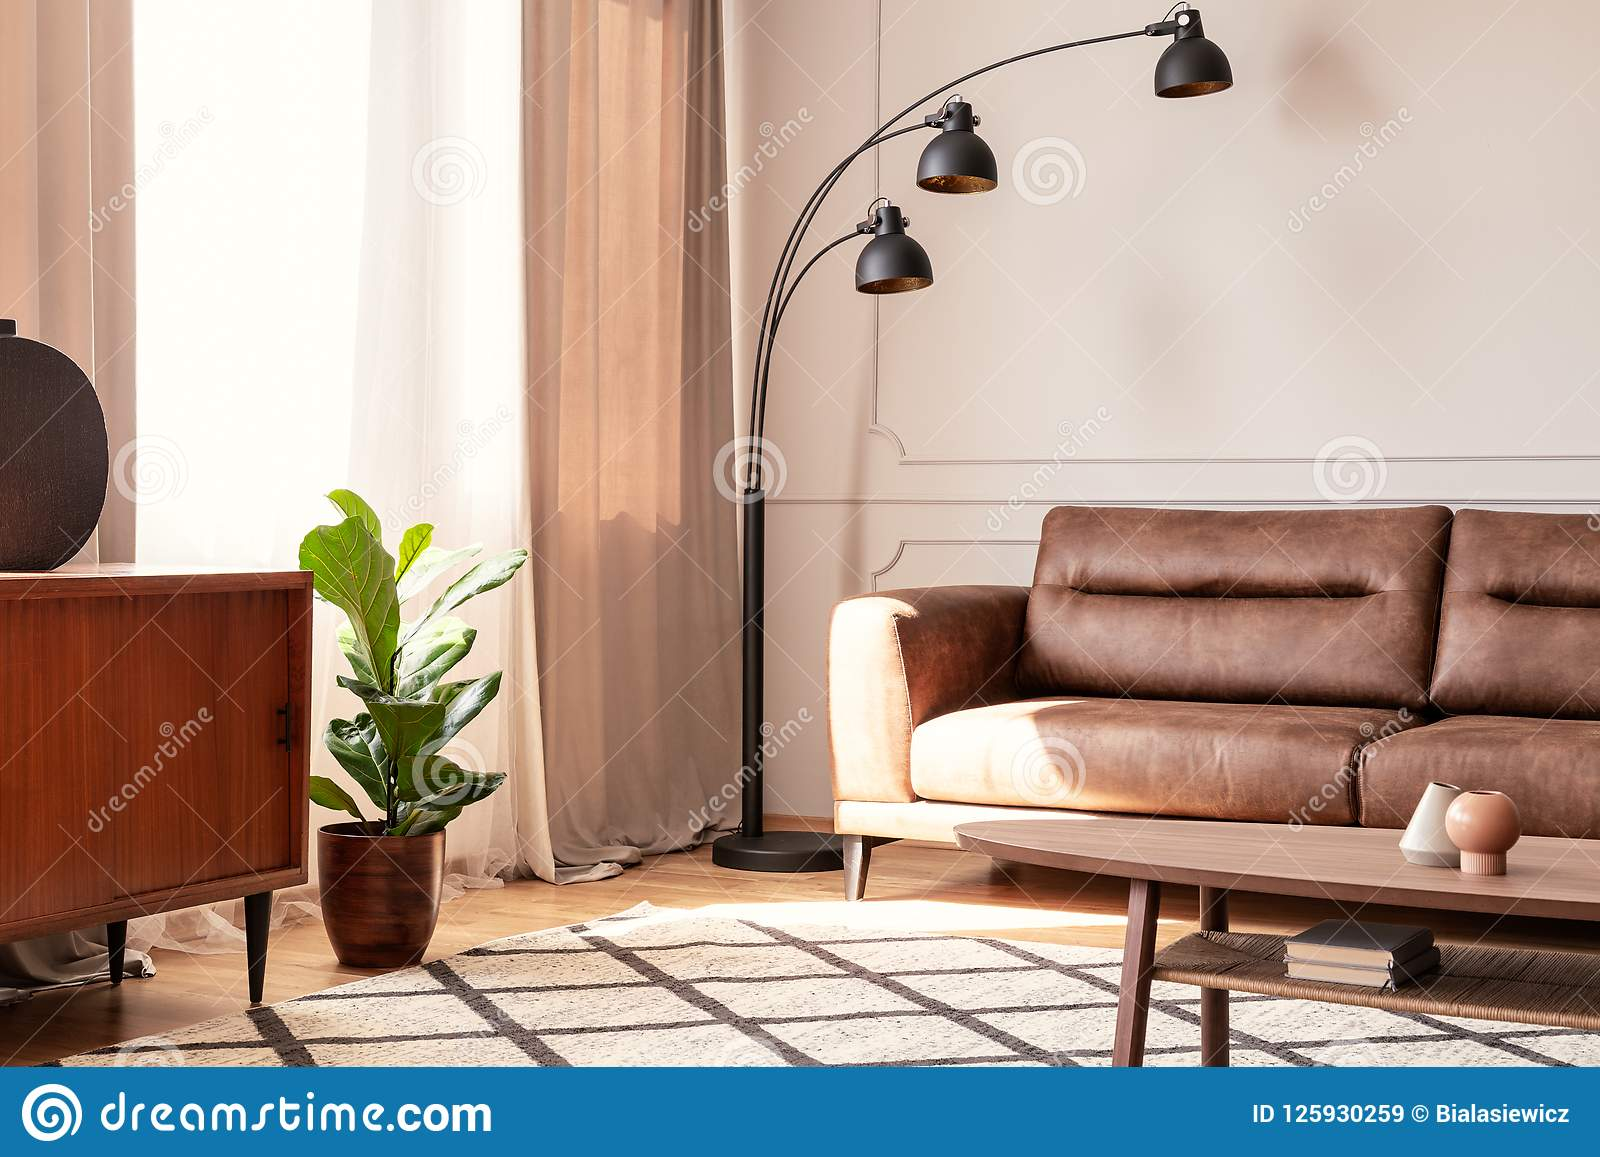 Pleasant Black Lamp Next To Leather Sofa In Retro Living Room Pdpeps Interior Chair Design Pdpepsorg